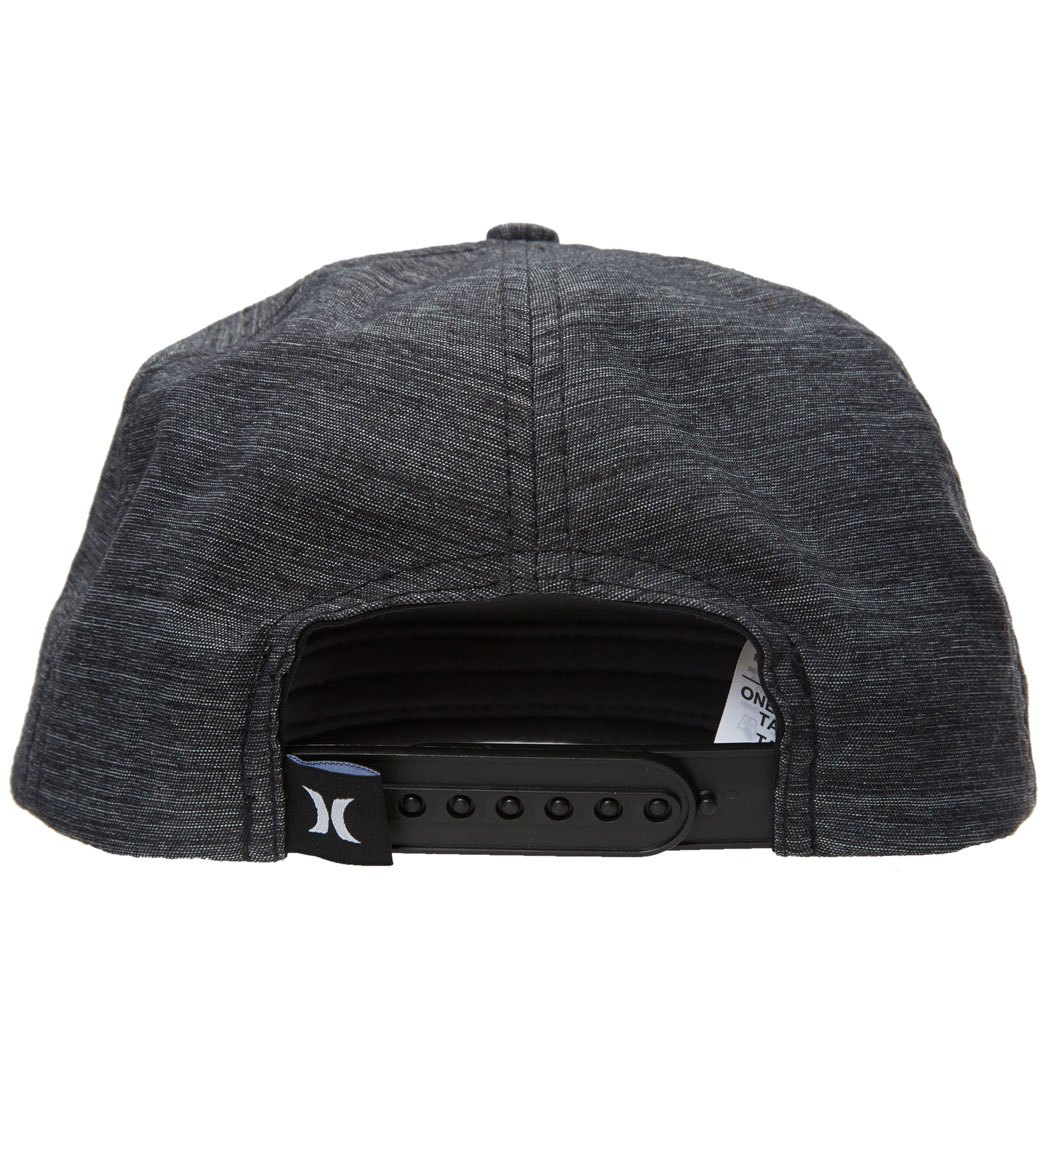 sneakers for cheap 0dce6 4fc60 Hurley Dri-Fit Staple Hat